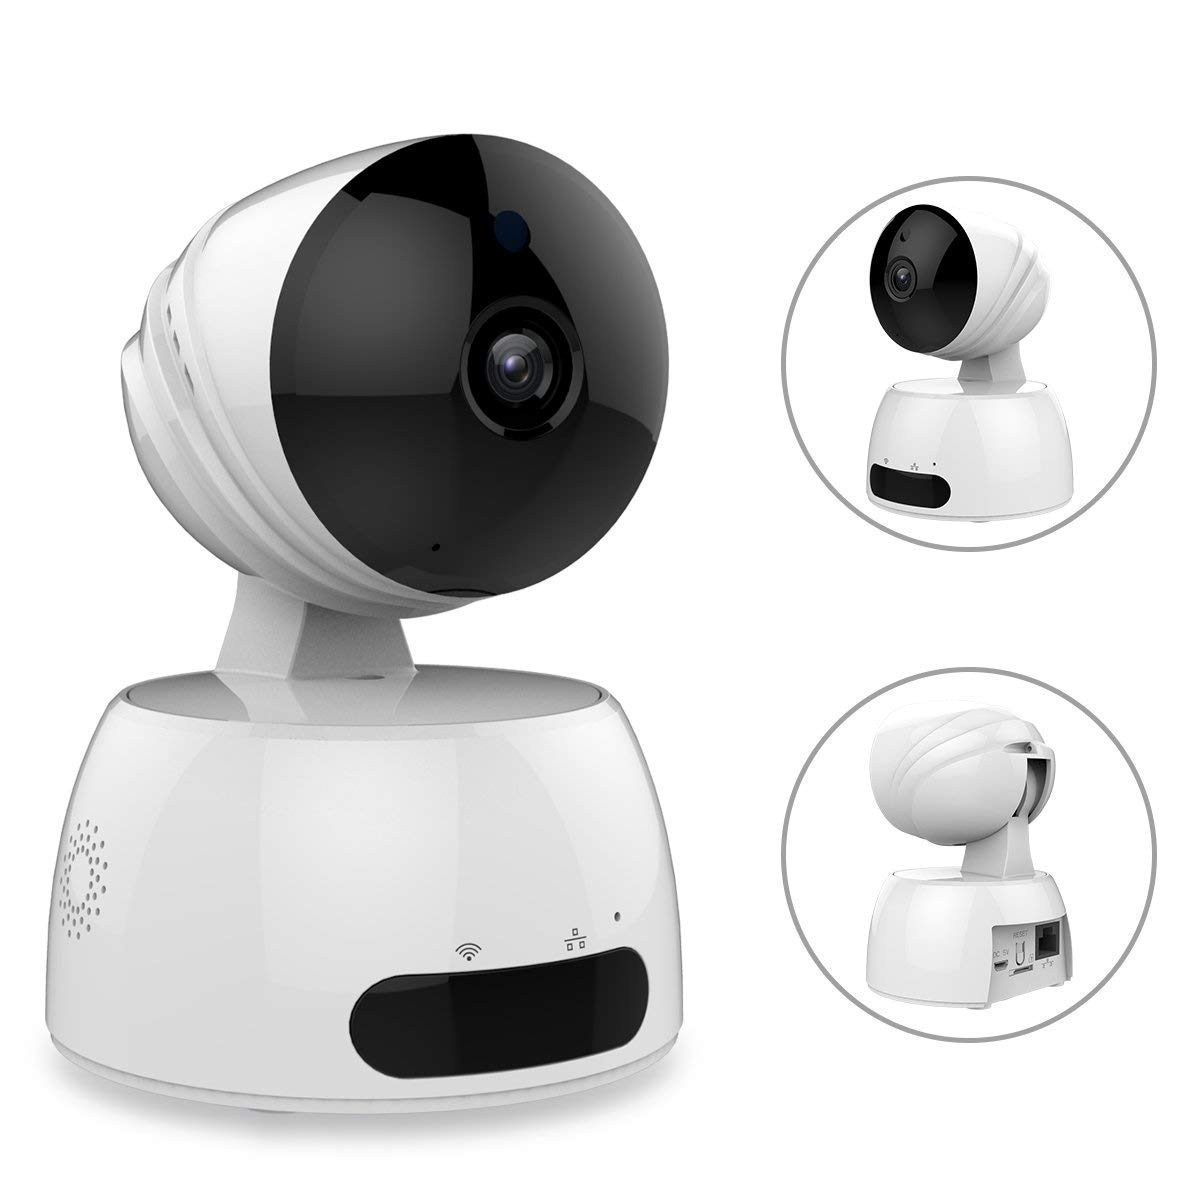 Pet Camera, Petocase 1.0MP 720P Home Wireless Security System with Two Way Audio Remote Indoor Night Vision Pet Baby Monitor